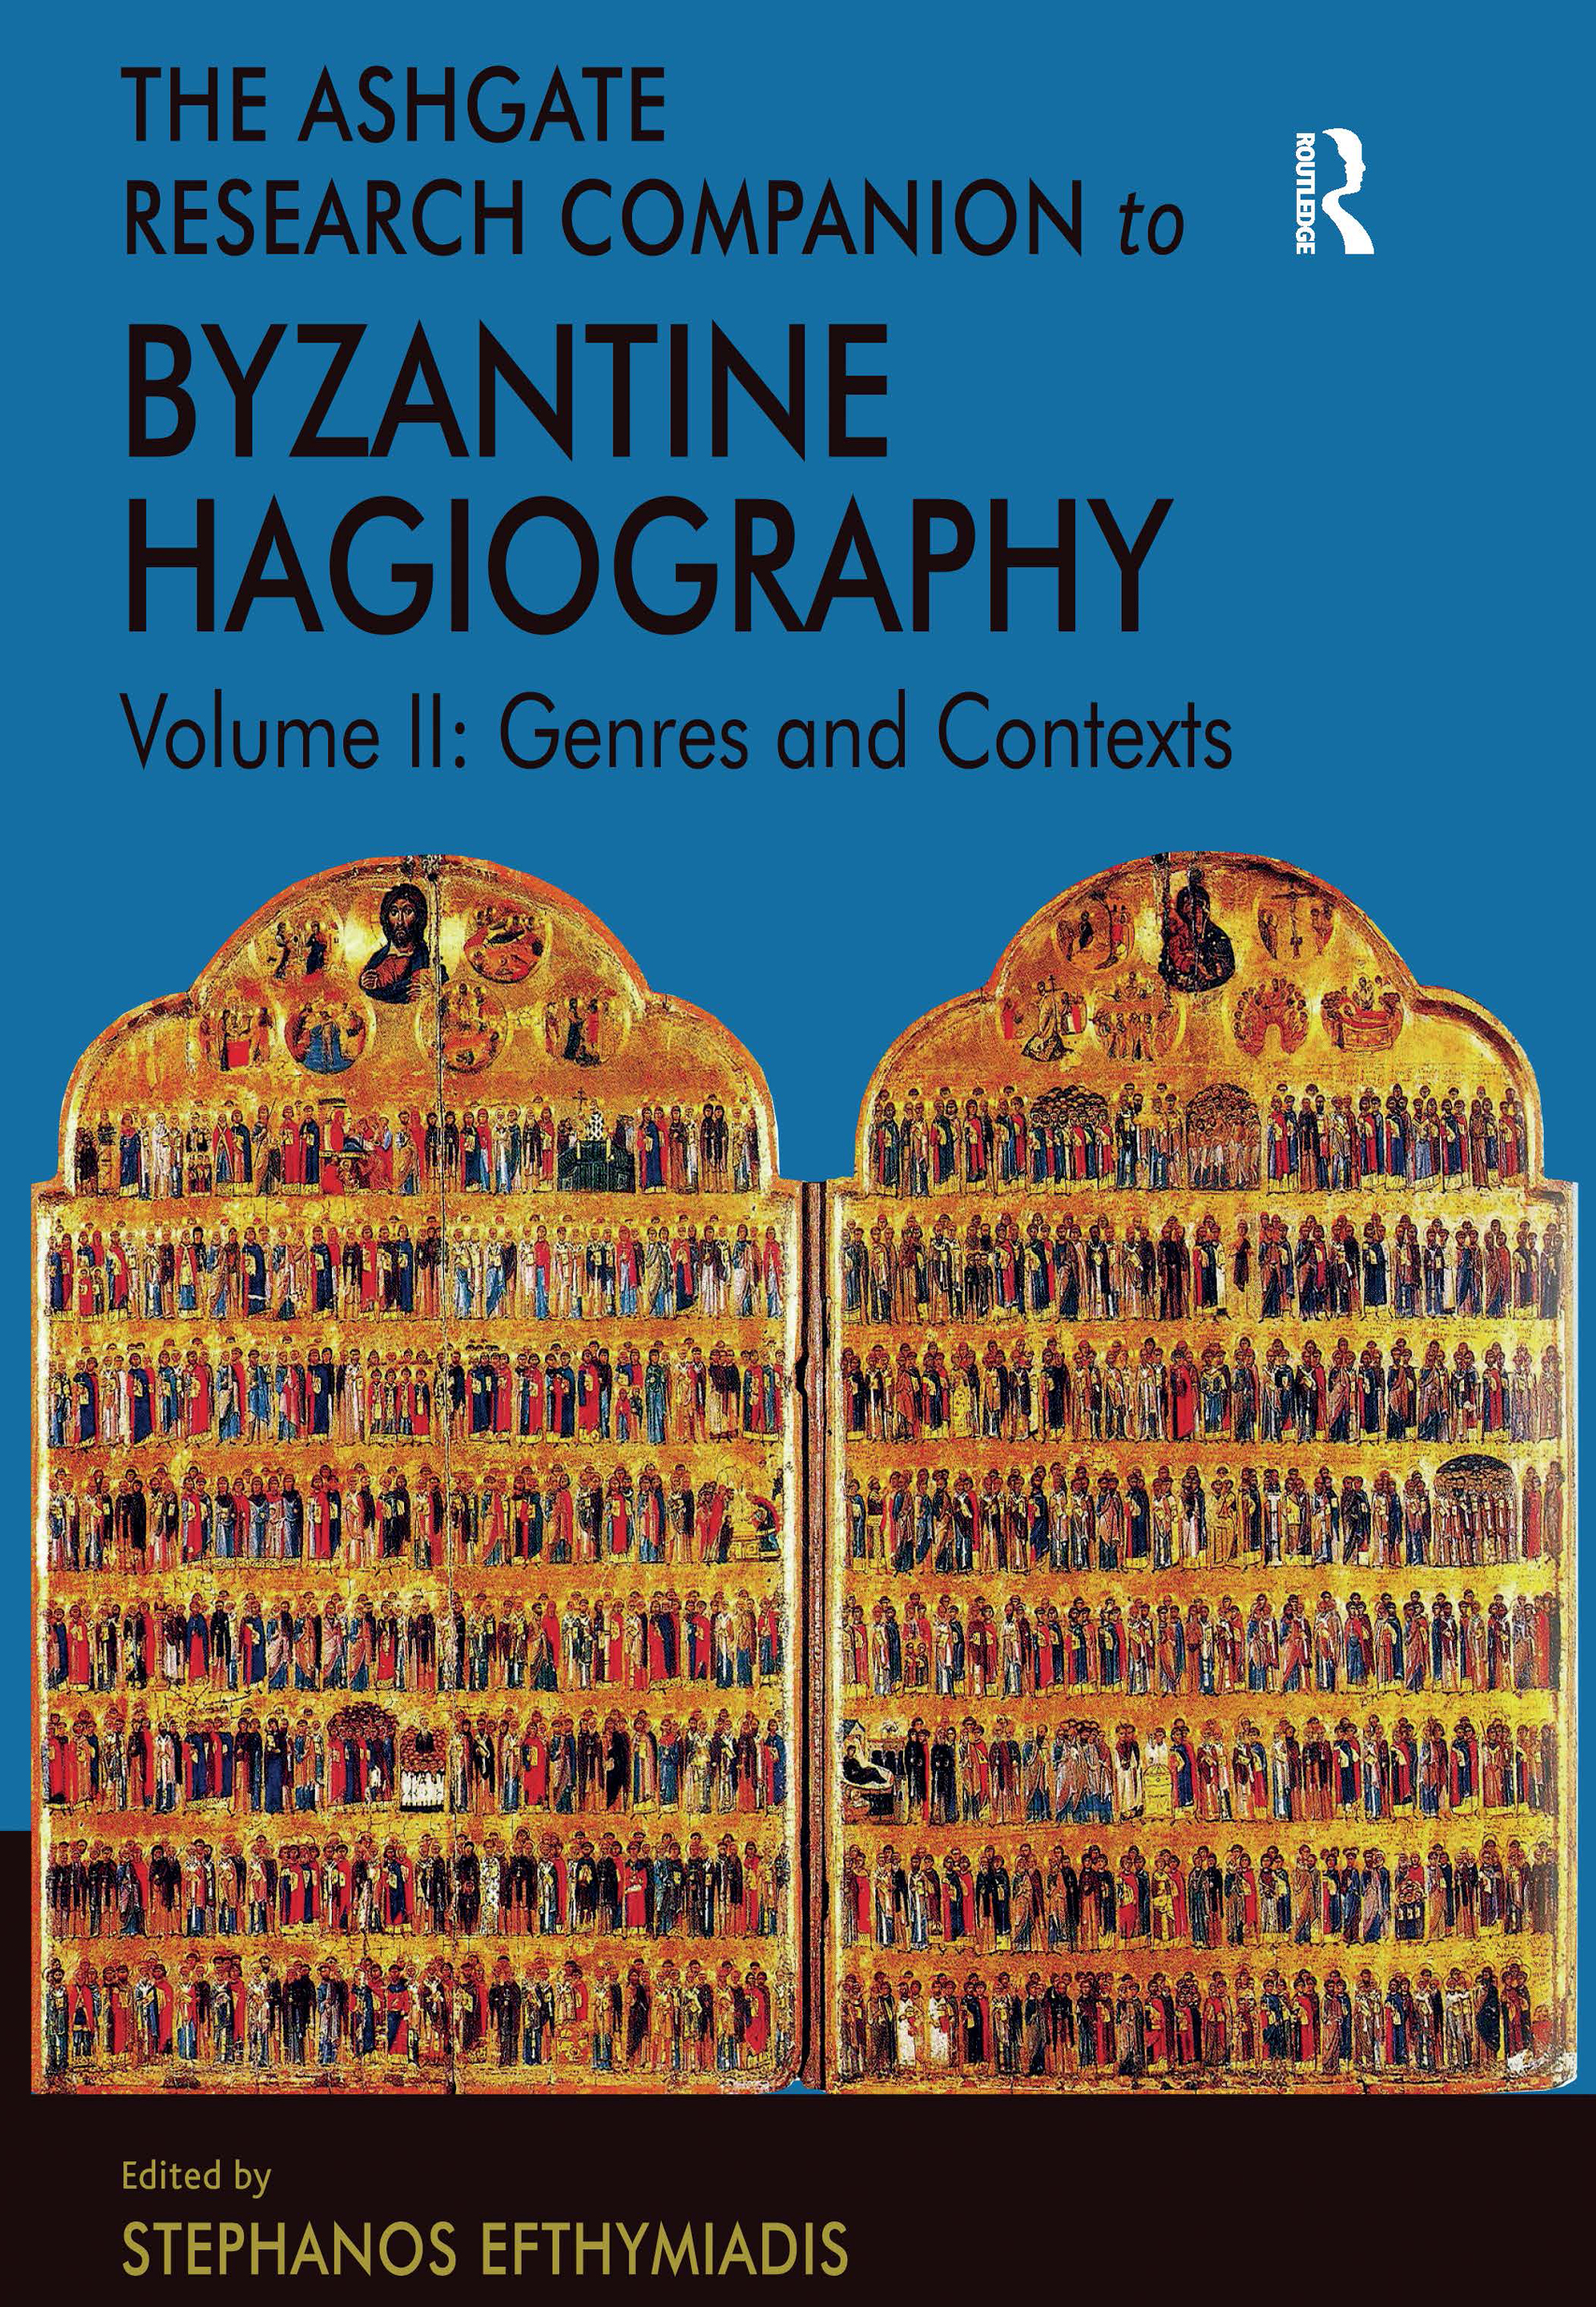 The Ashgate Research Companion to Byzantine Hagiography: Volume II: Genres and Contexts book cover